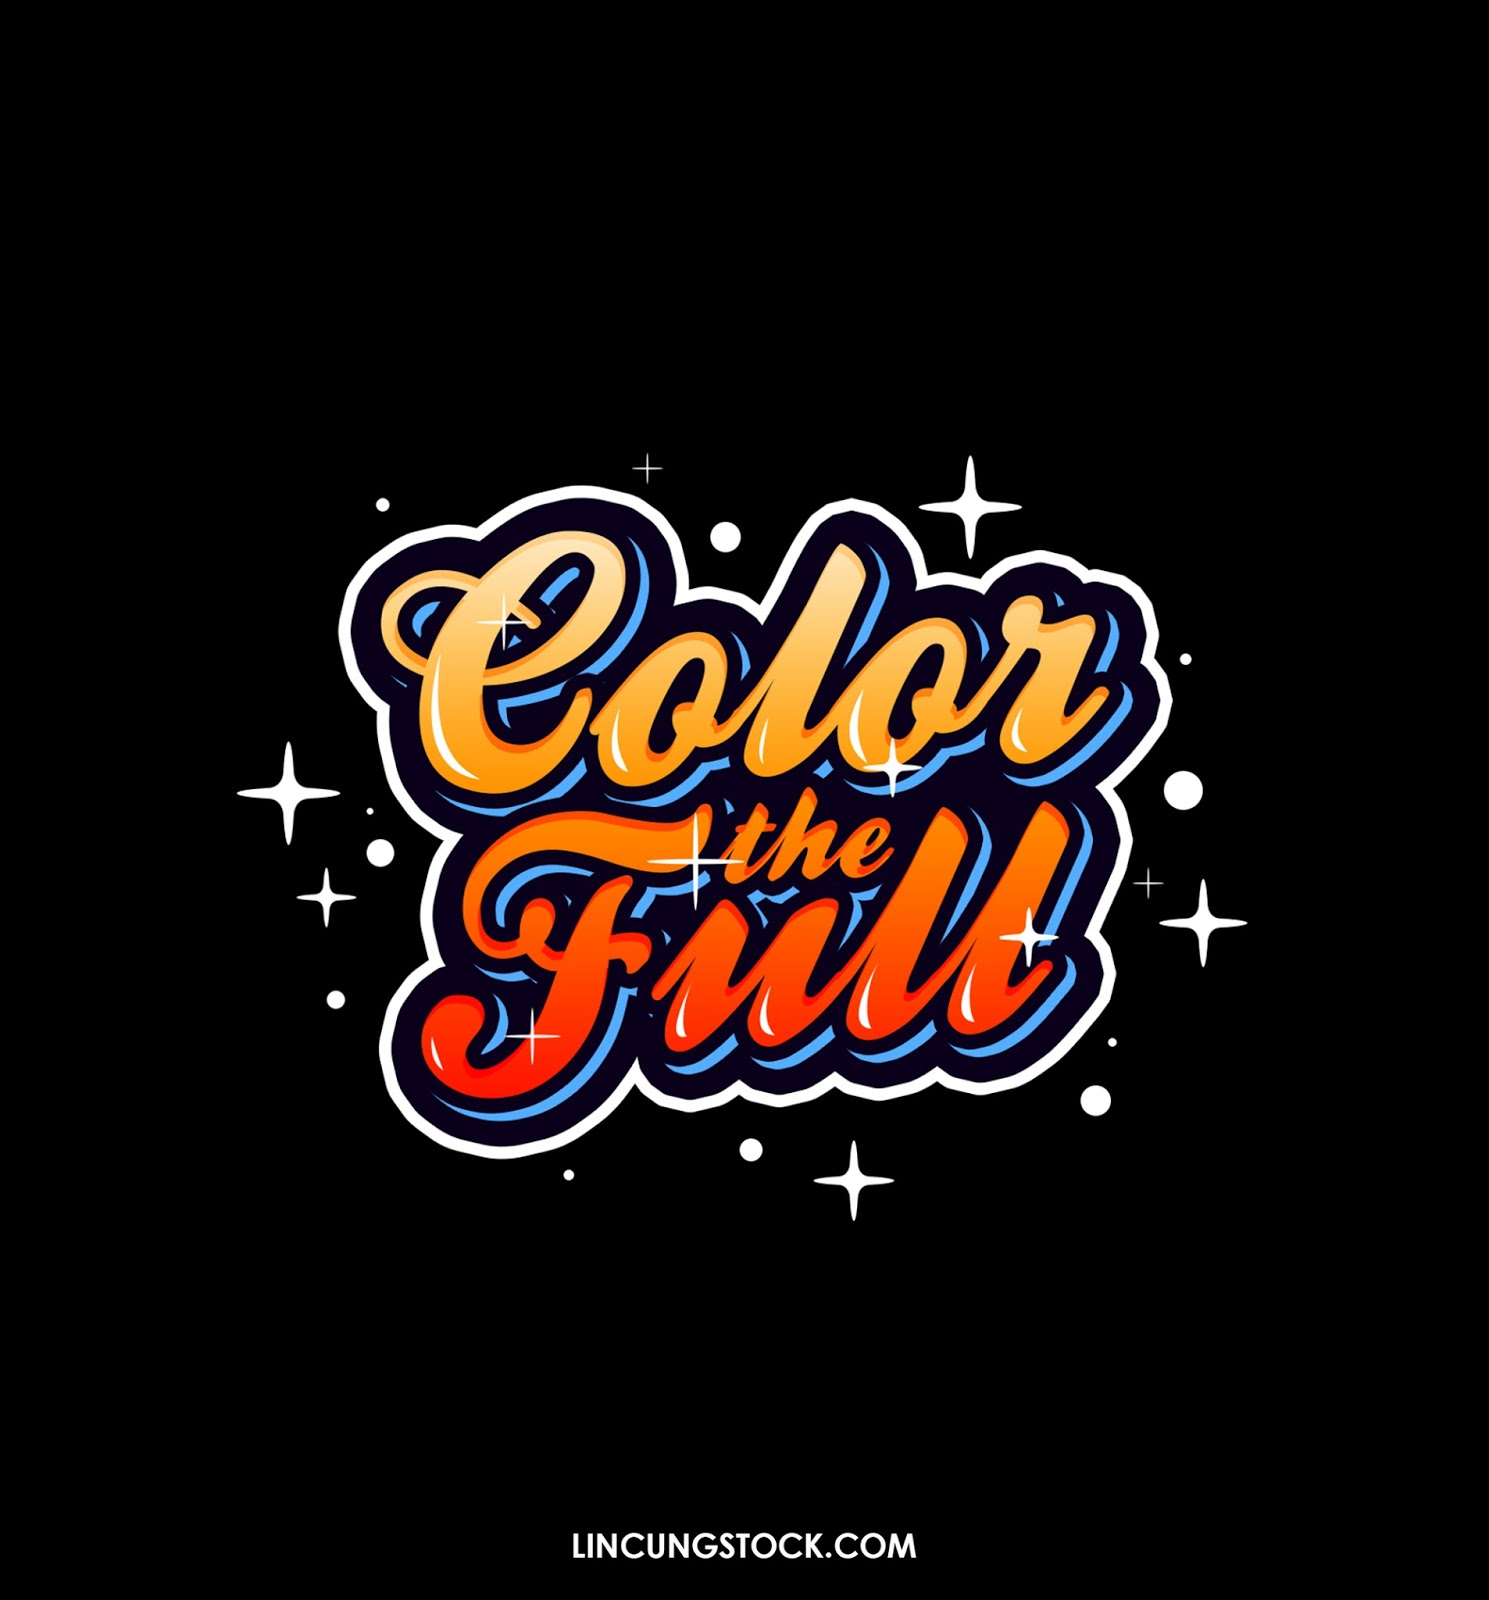 Free Download Colorful Typography Text Effect Template - PSD File